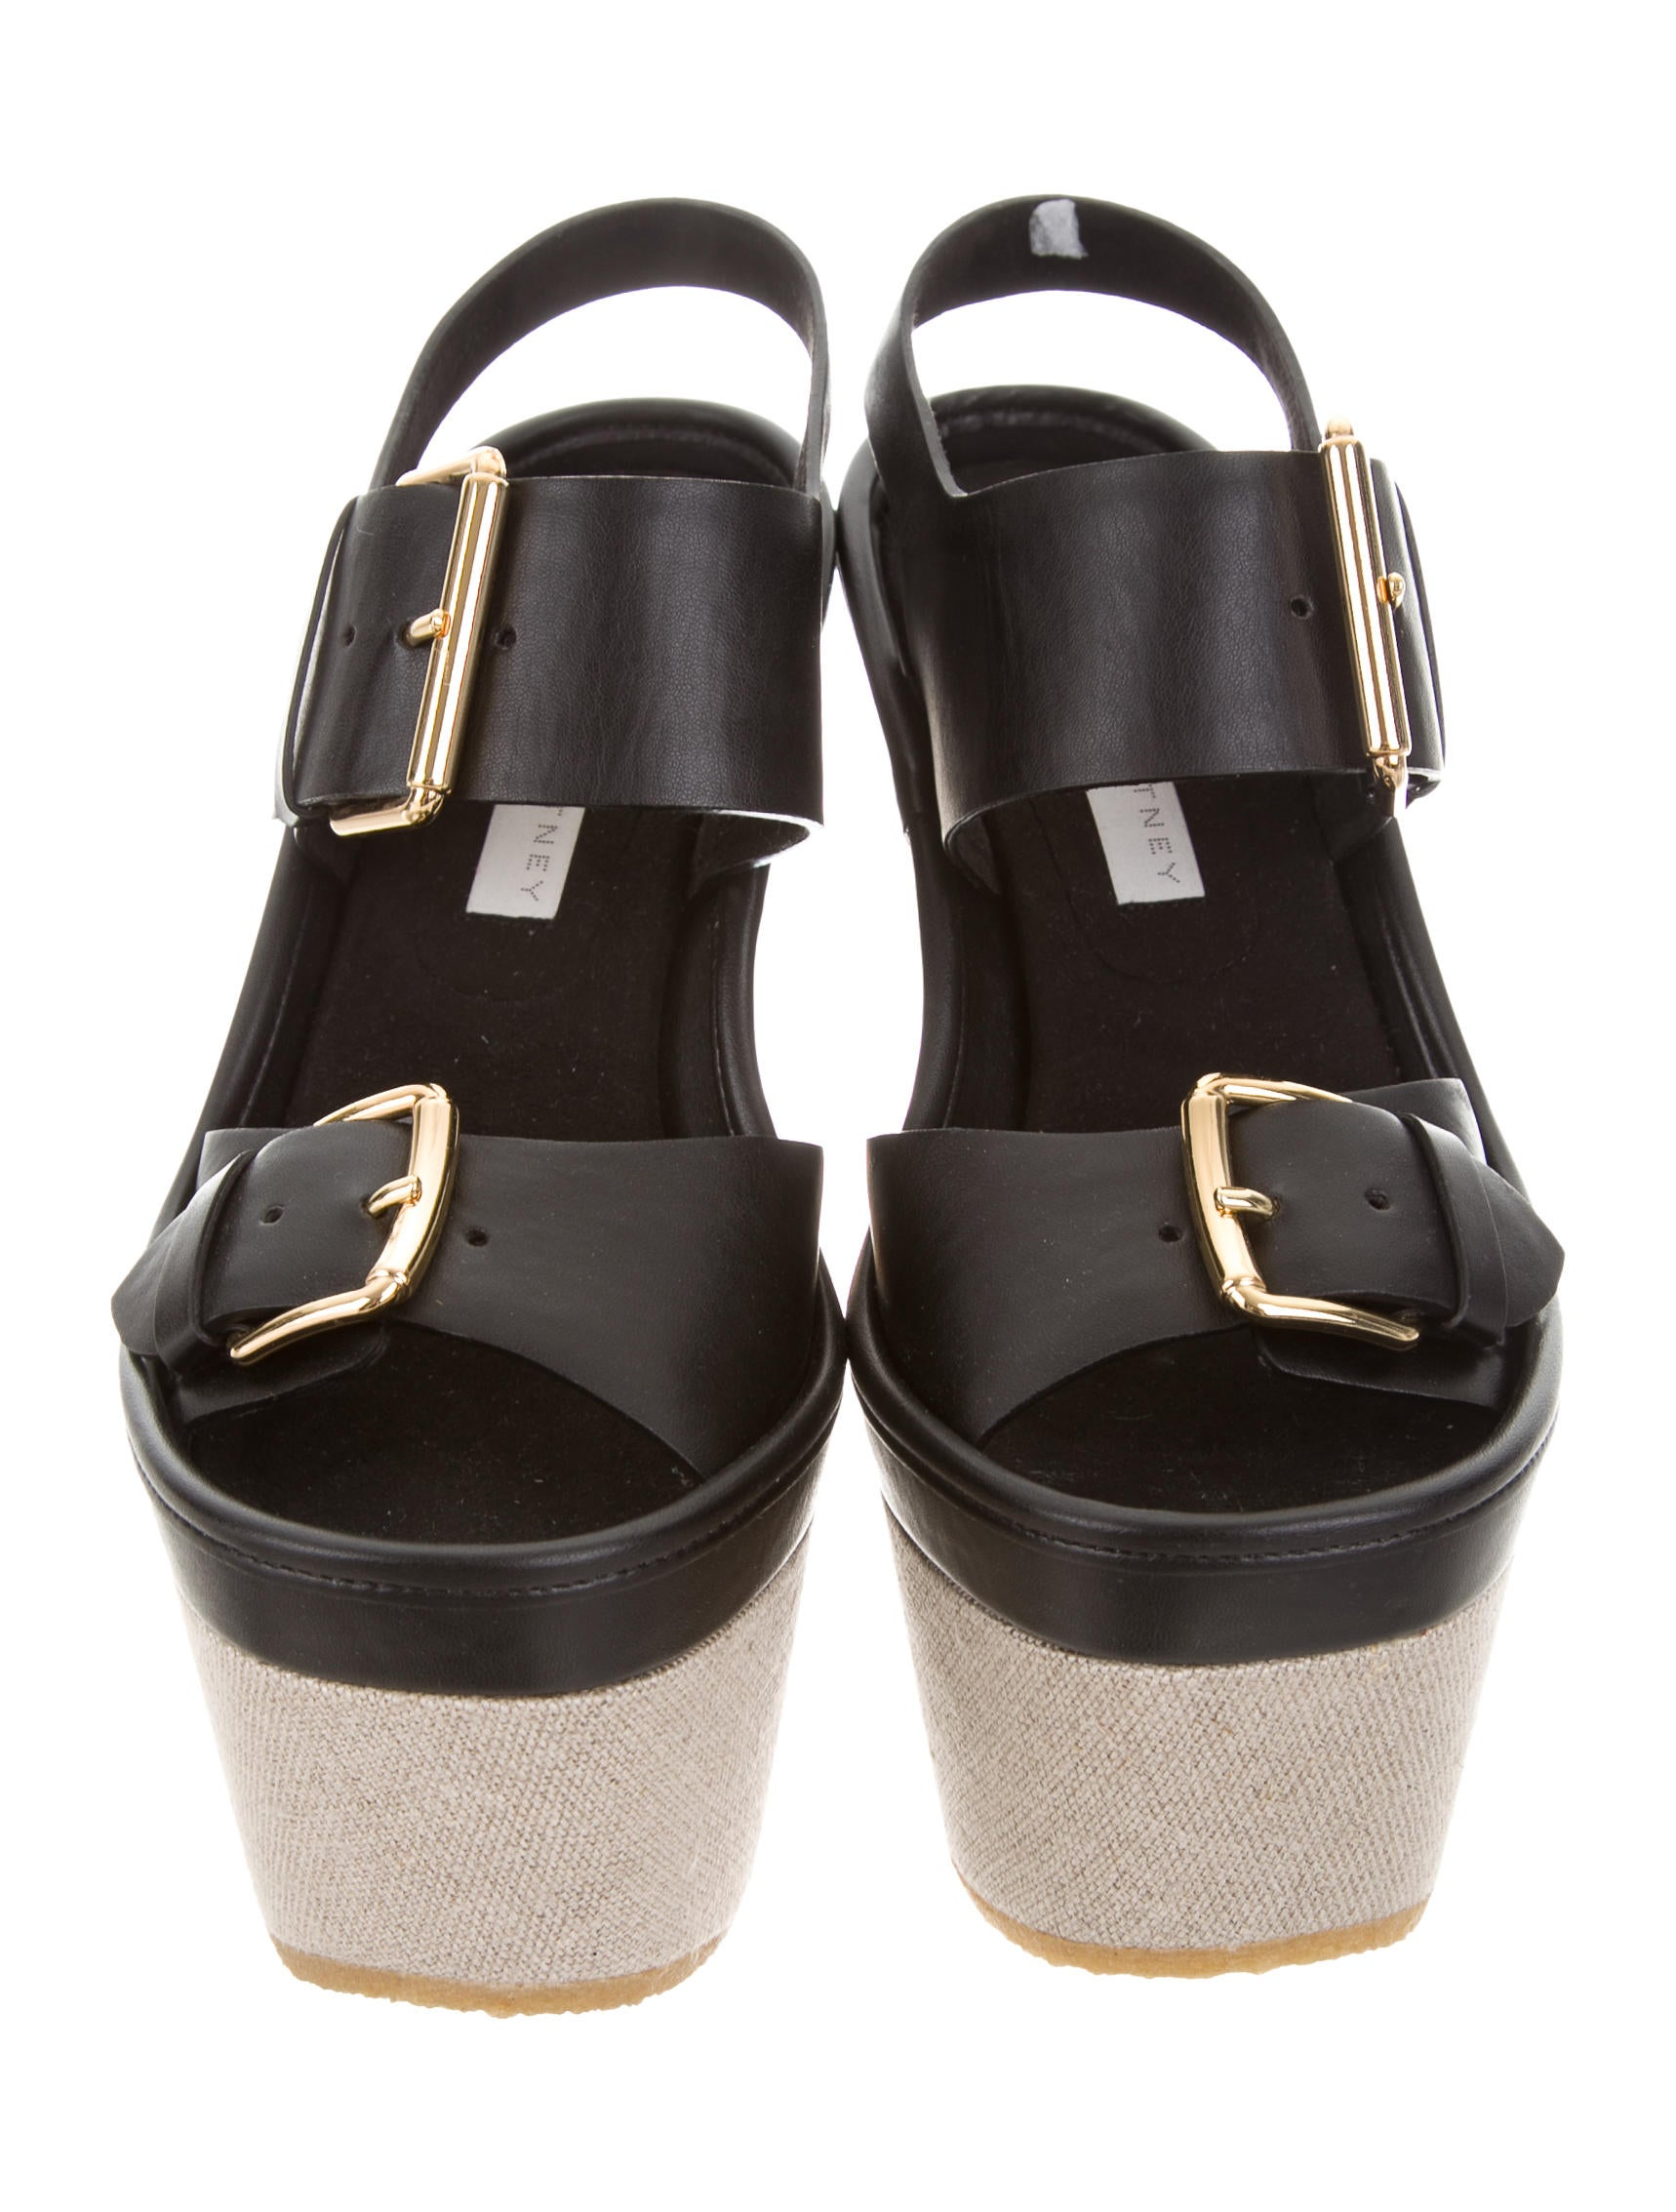 Find great deals on eBay for platform shoes. Shop with confidence. Skip to main content. eBay: US Women Espadrilles Platform High Heels Shoes Ankle Strap Open Toe Wedge Sandal. Unbranded. $ Buy It Now. Free Shipping. Womens Sandals Flat Wedge Strappy Espadrilles Peep Toe Beach Flip Flops Shoes.